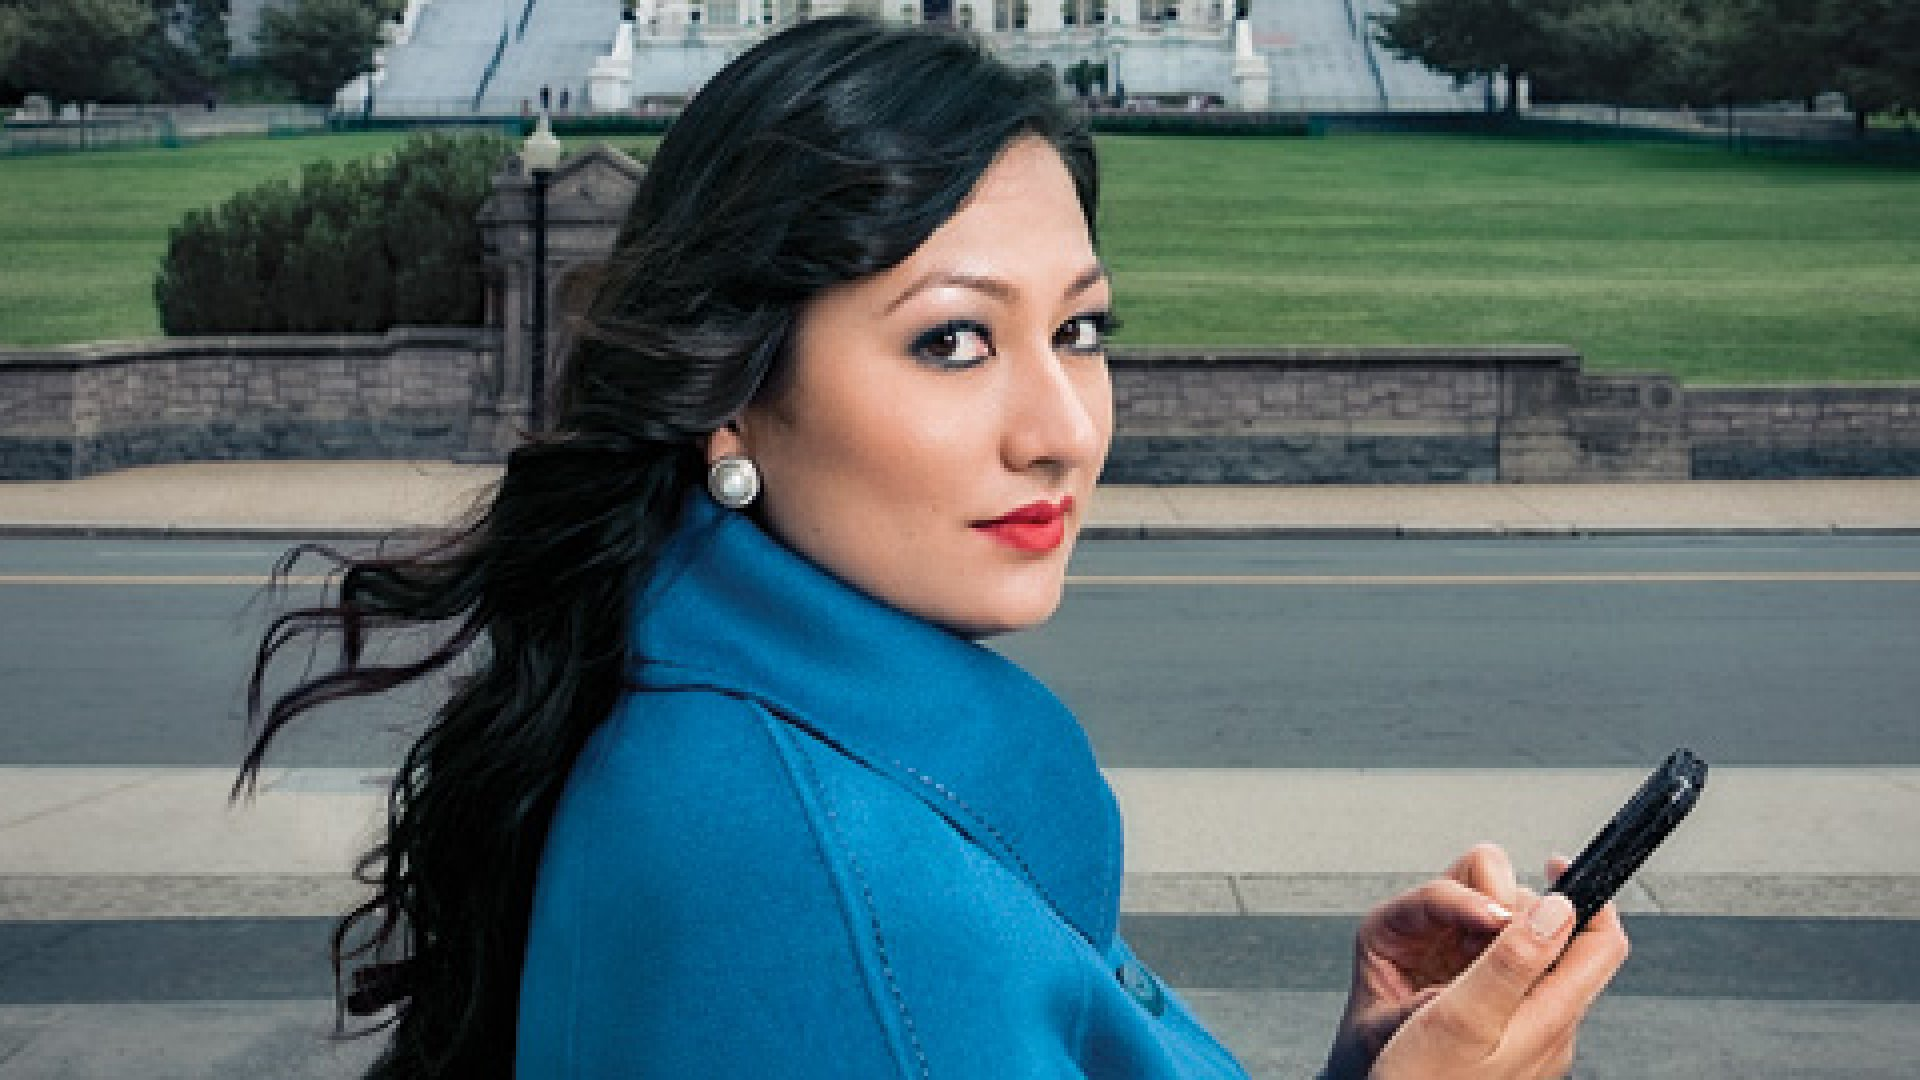 <strong>Queen of the Hill</strong> Lani Hay chats up members of Congress on Capitol Hill -- and at her dinner parties.